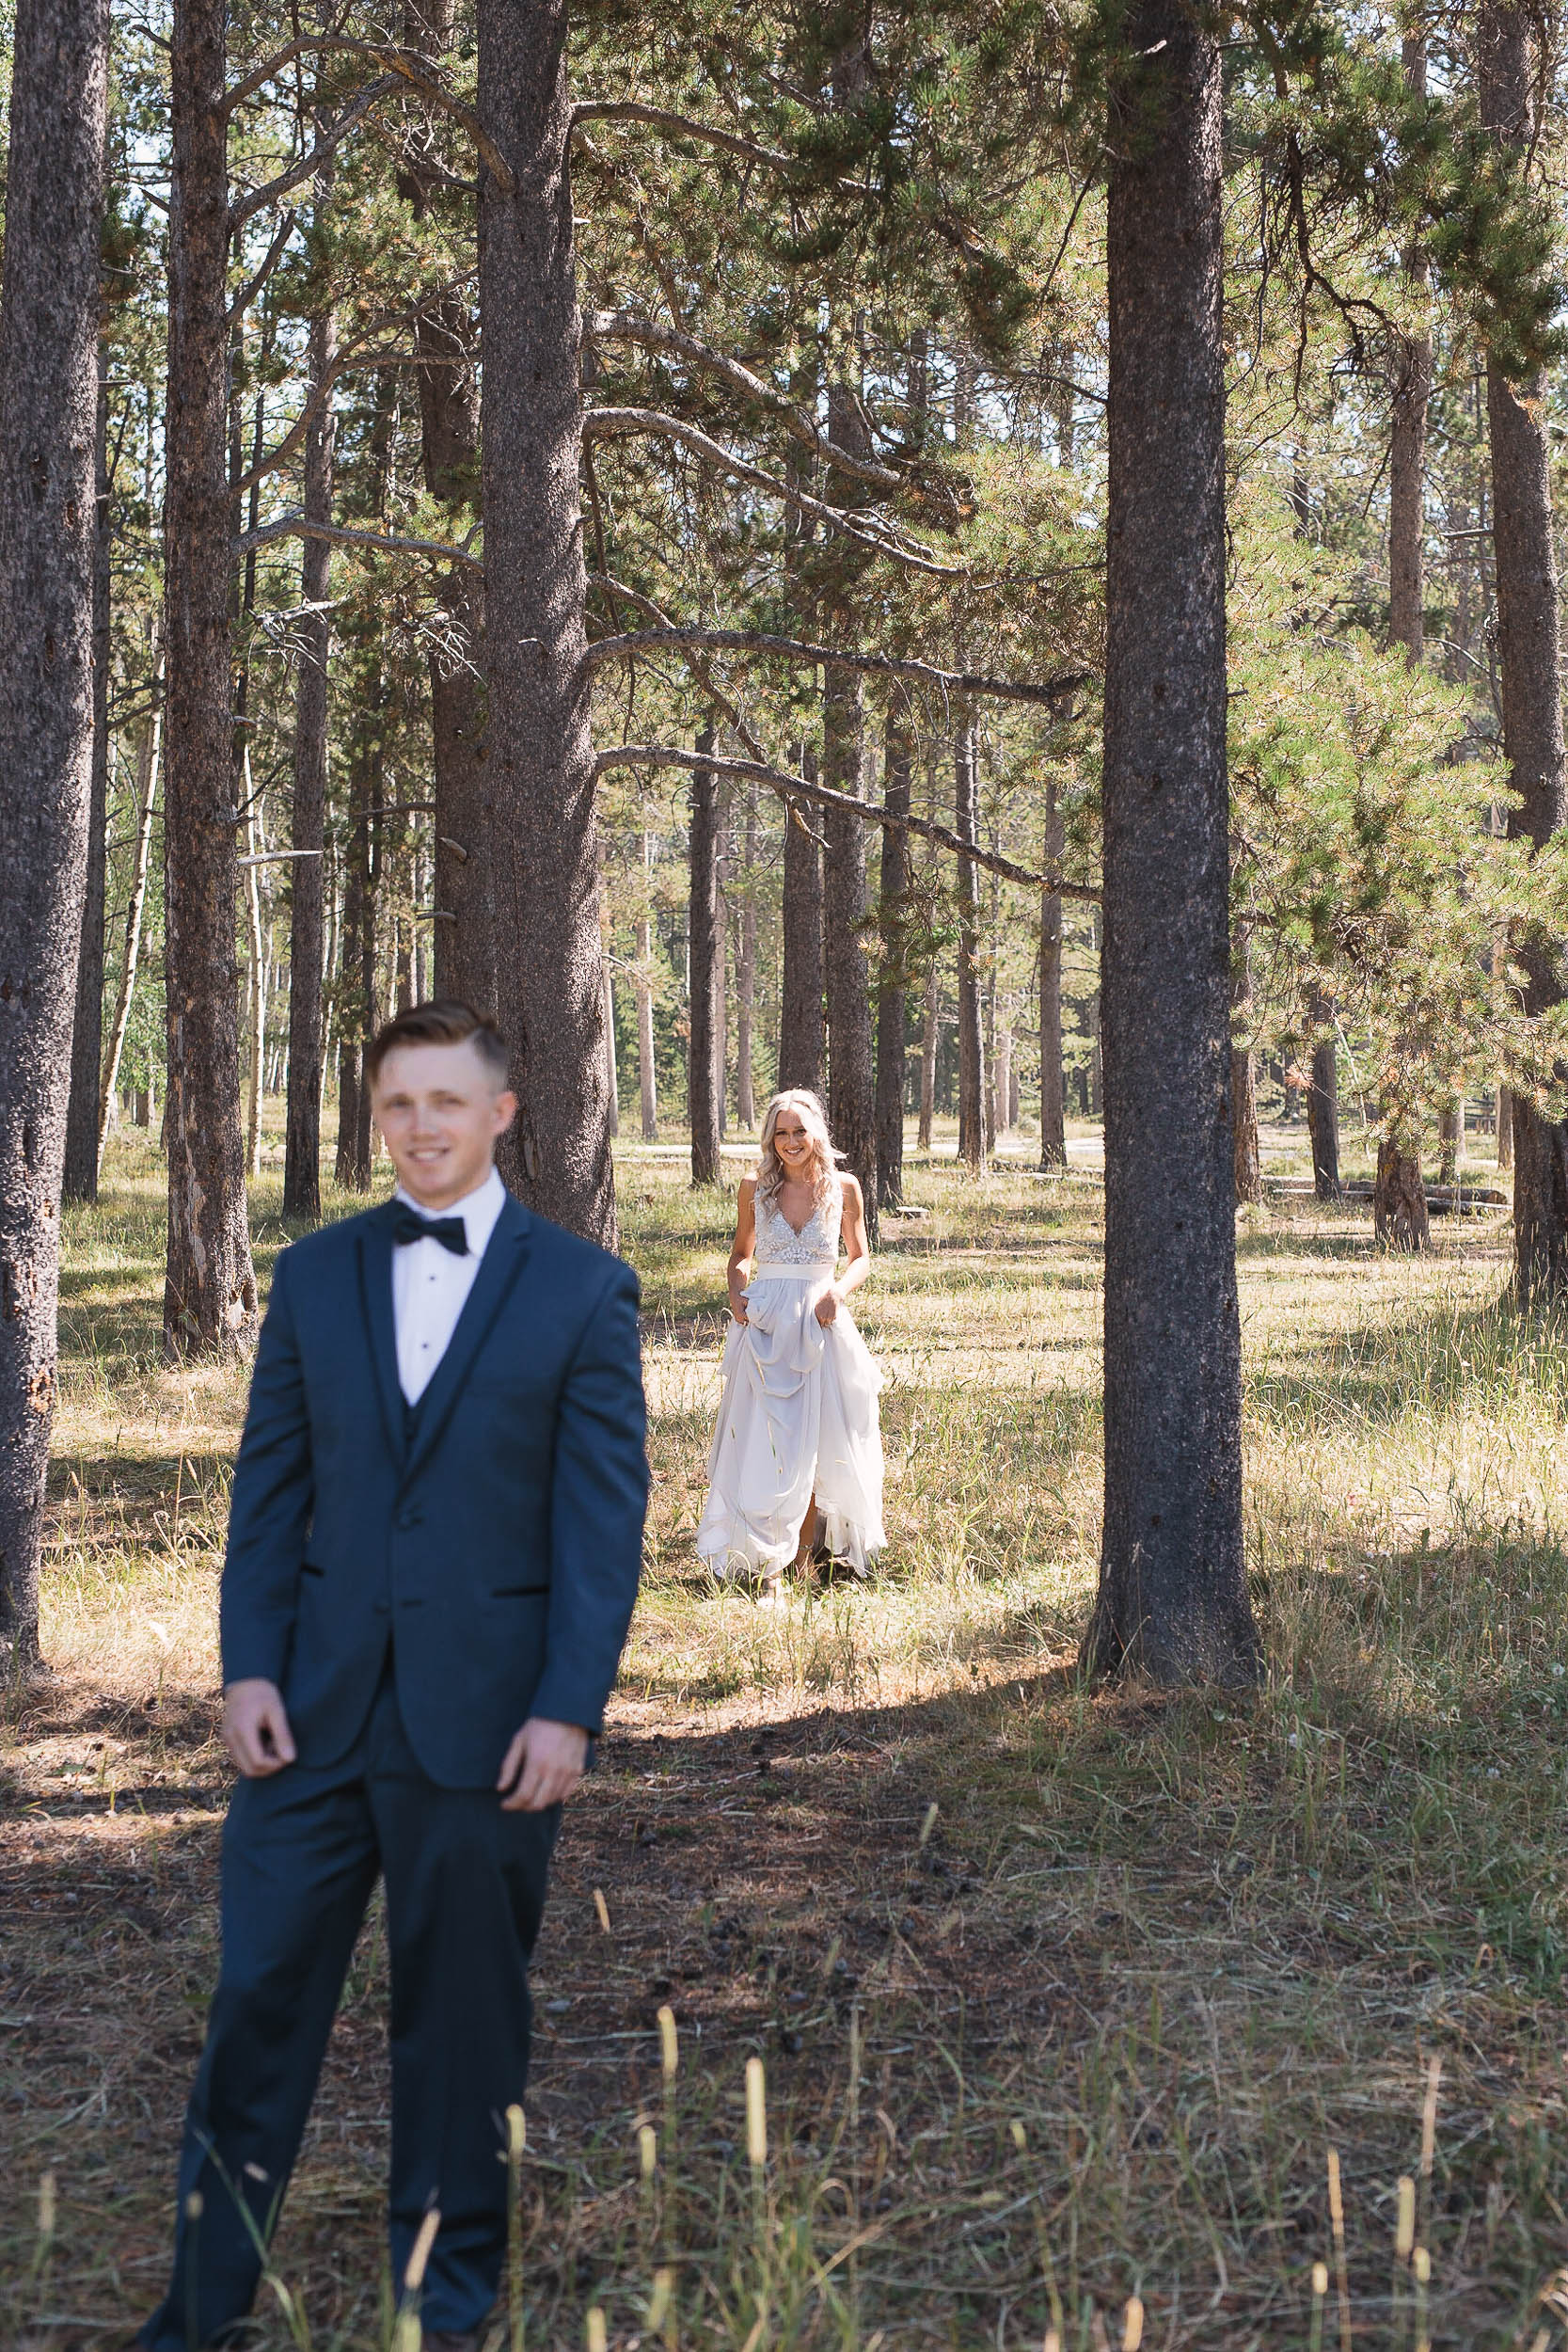 Bride and groom first look on wedding day at Casper Mountain